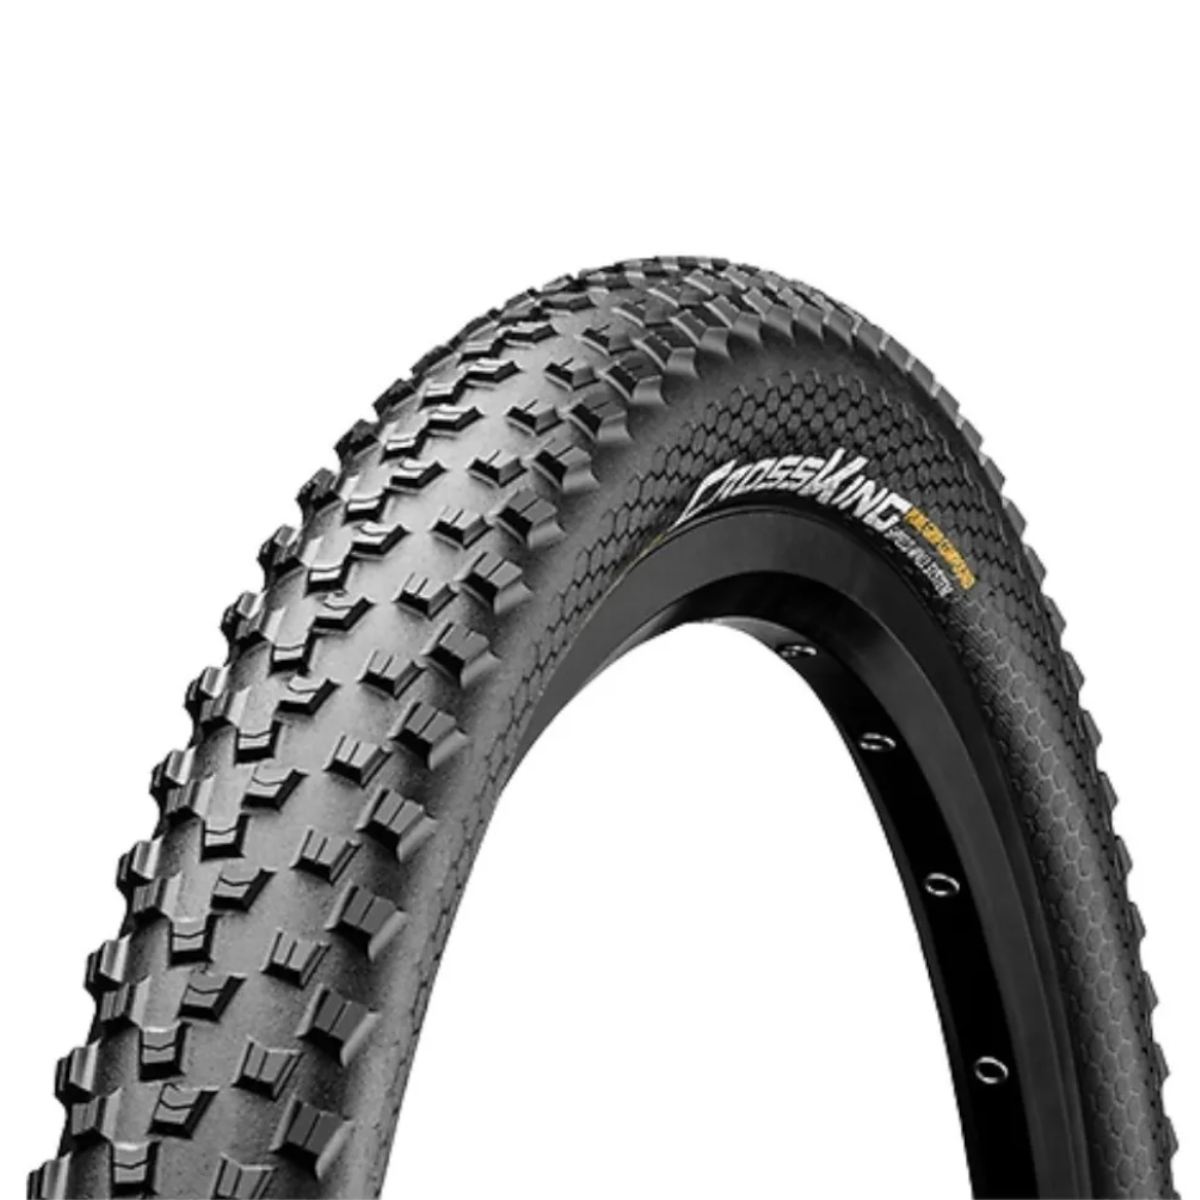 Pneu Continental Cross King 29 x 2.3 Kevlar Tubeless